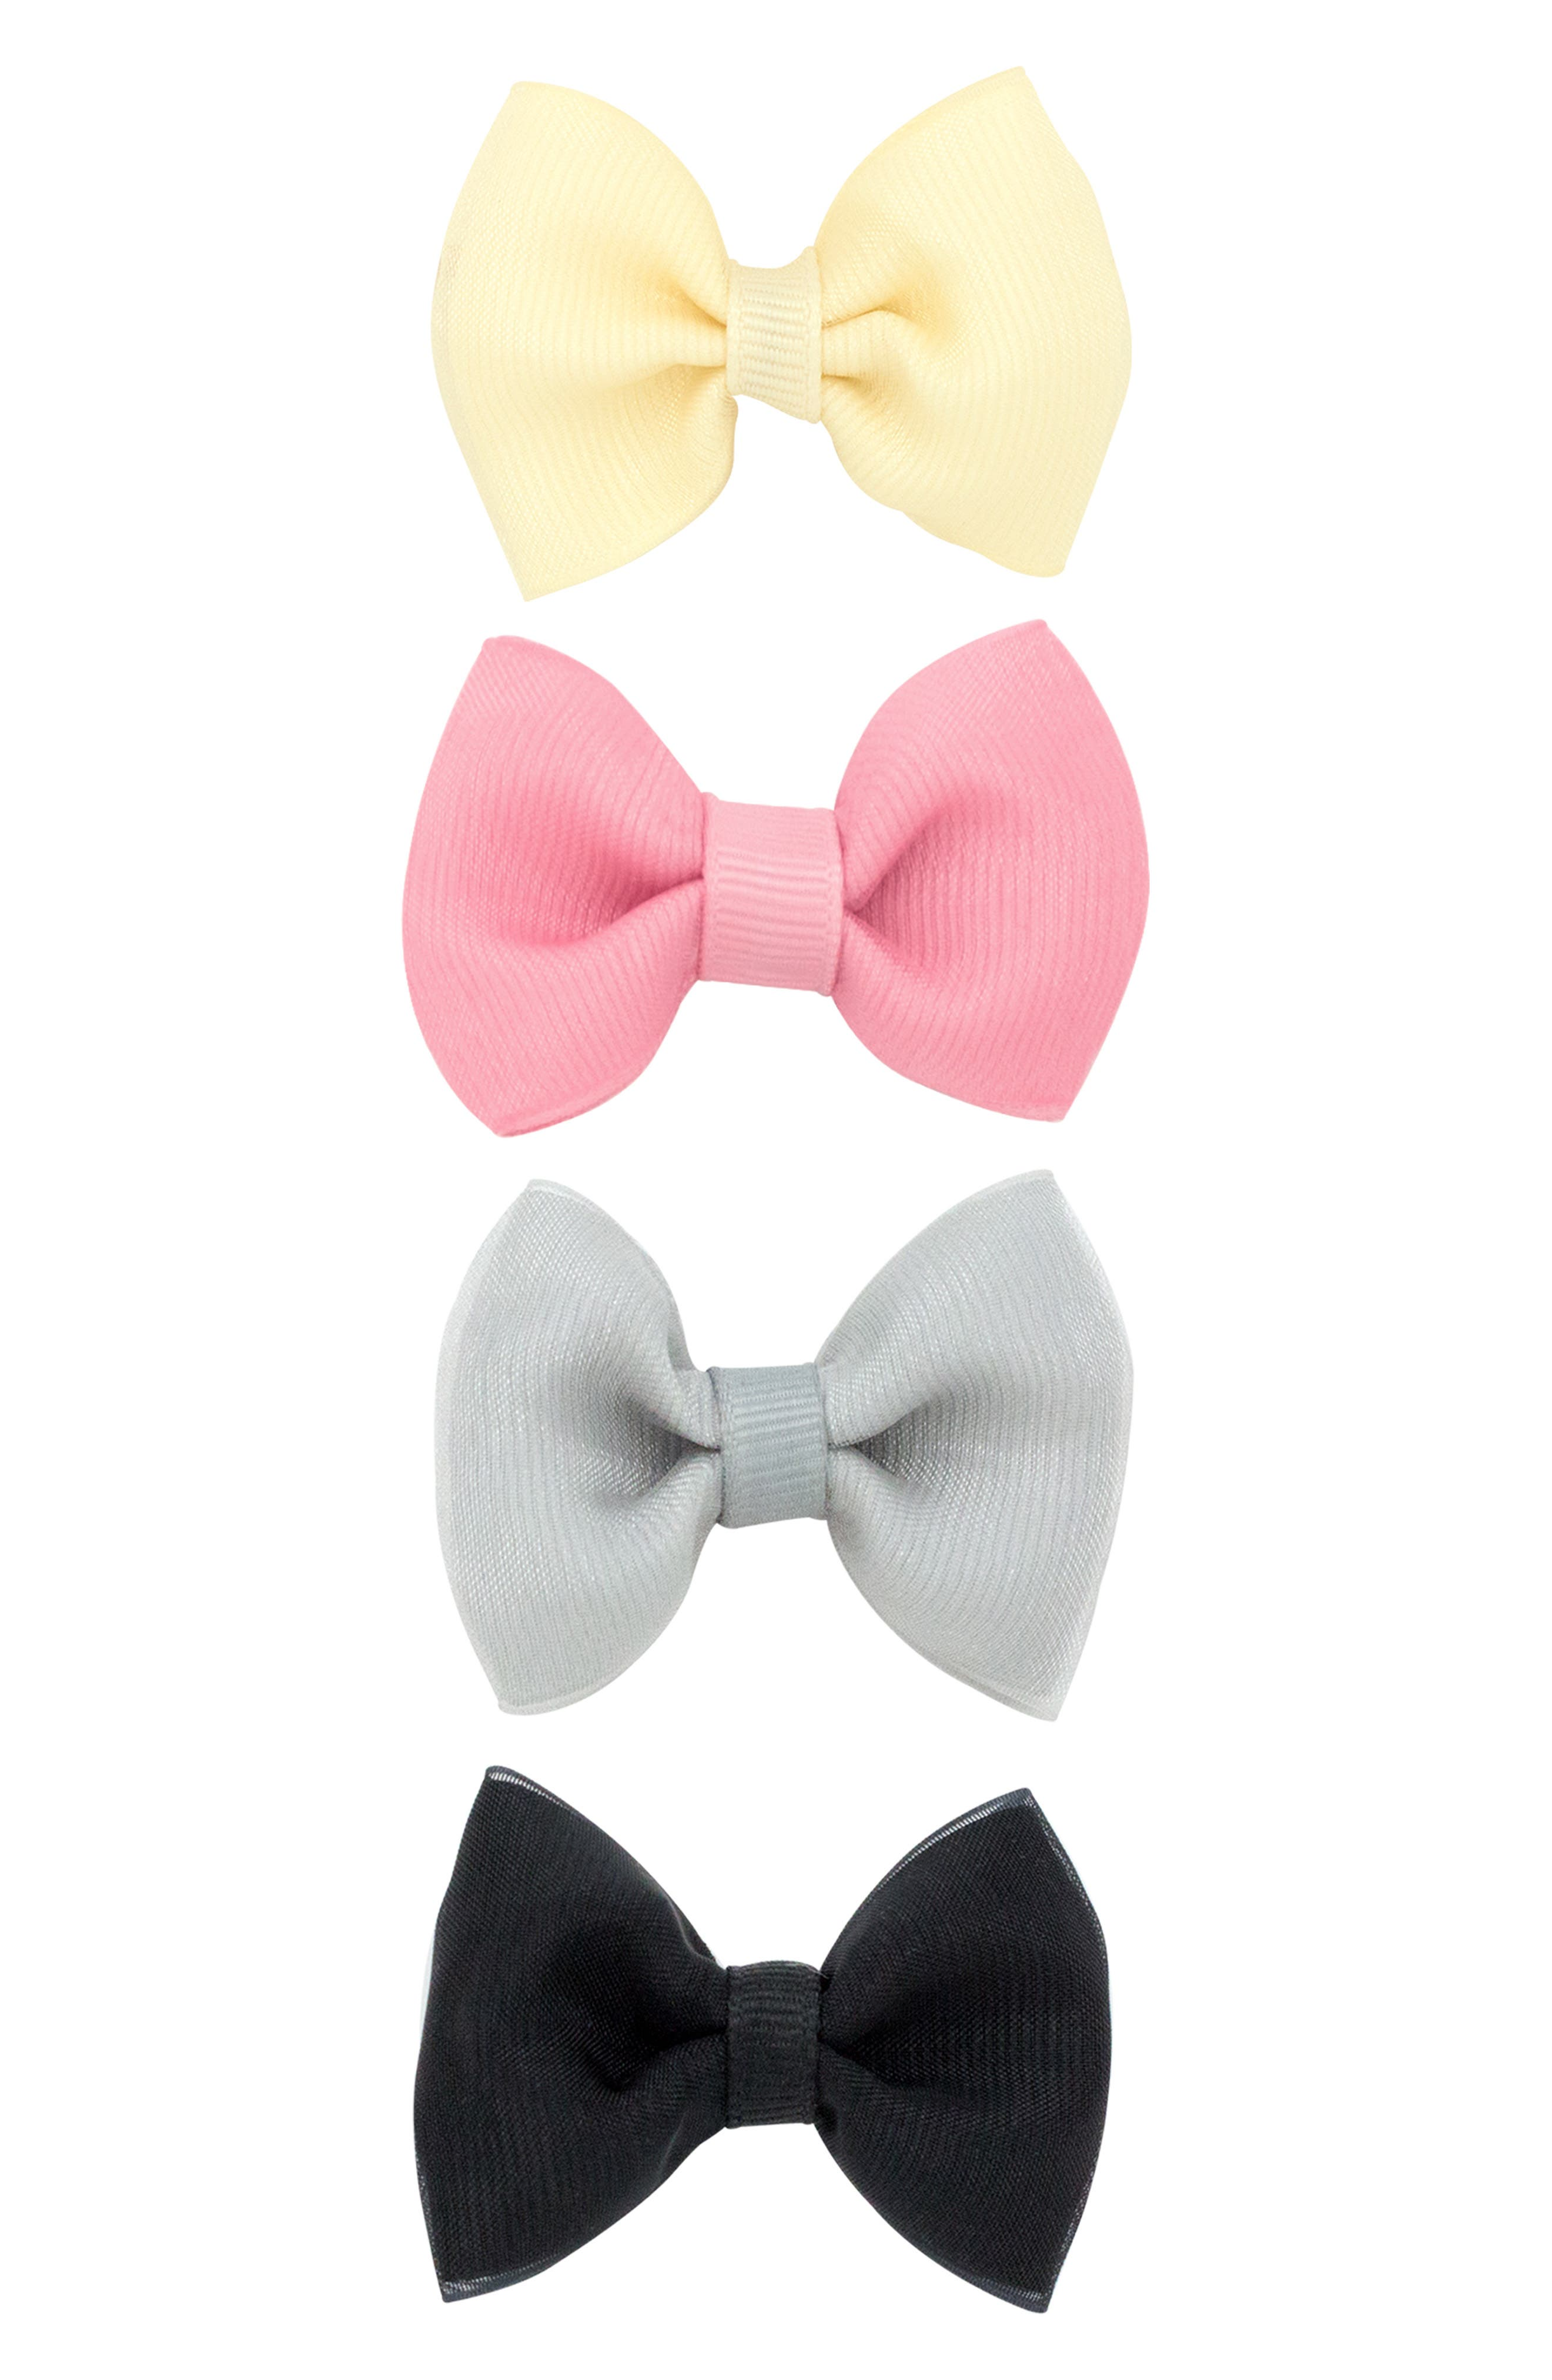 4-Pack Organza Bow Clips,                             Alternate thumbnail 2, color,                             PEONY